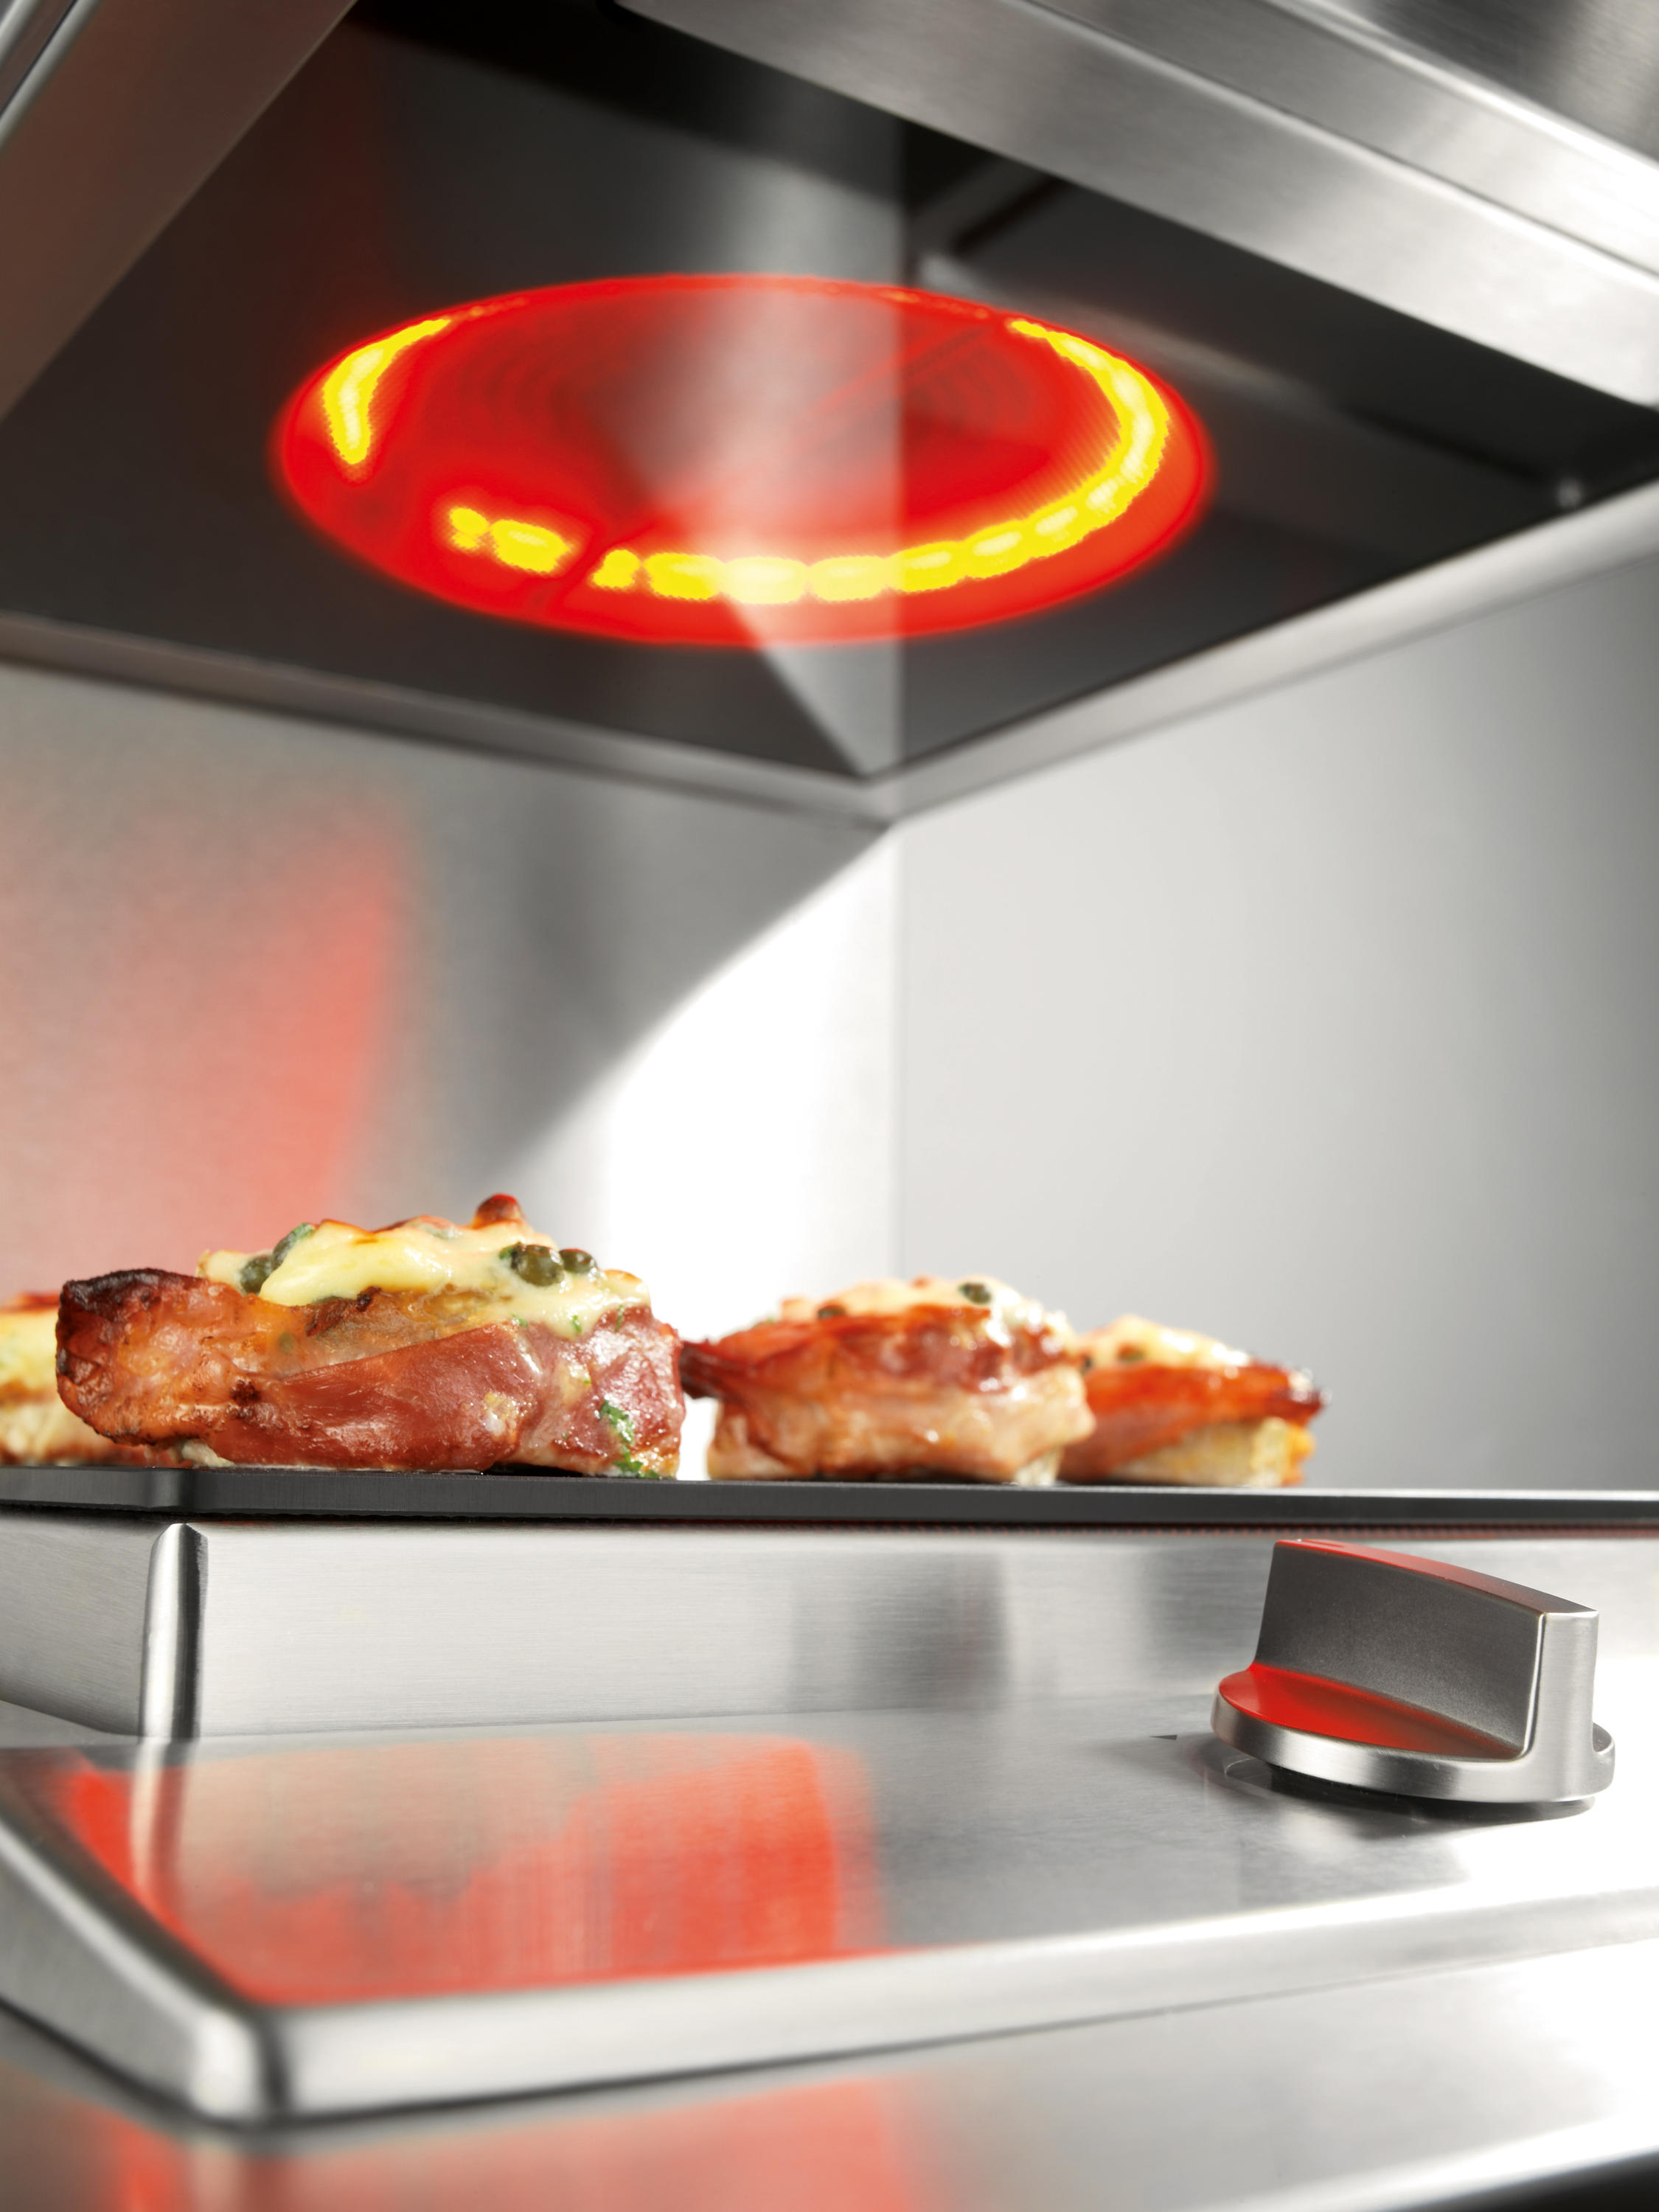 Uncategorized Salamander Kitchen Appliance Cs 1421 S Salamander Hobs From  Miele Architonic By Miele